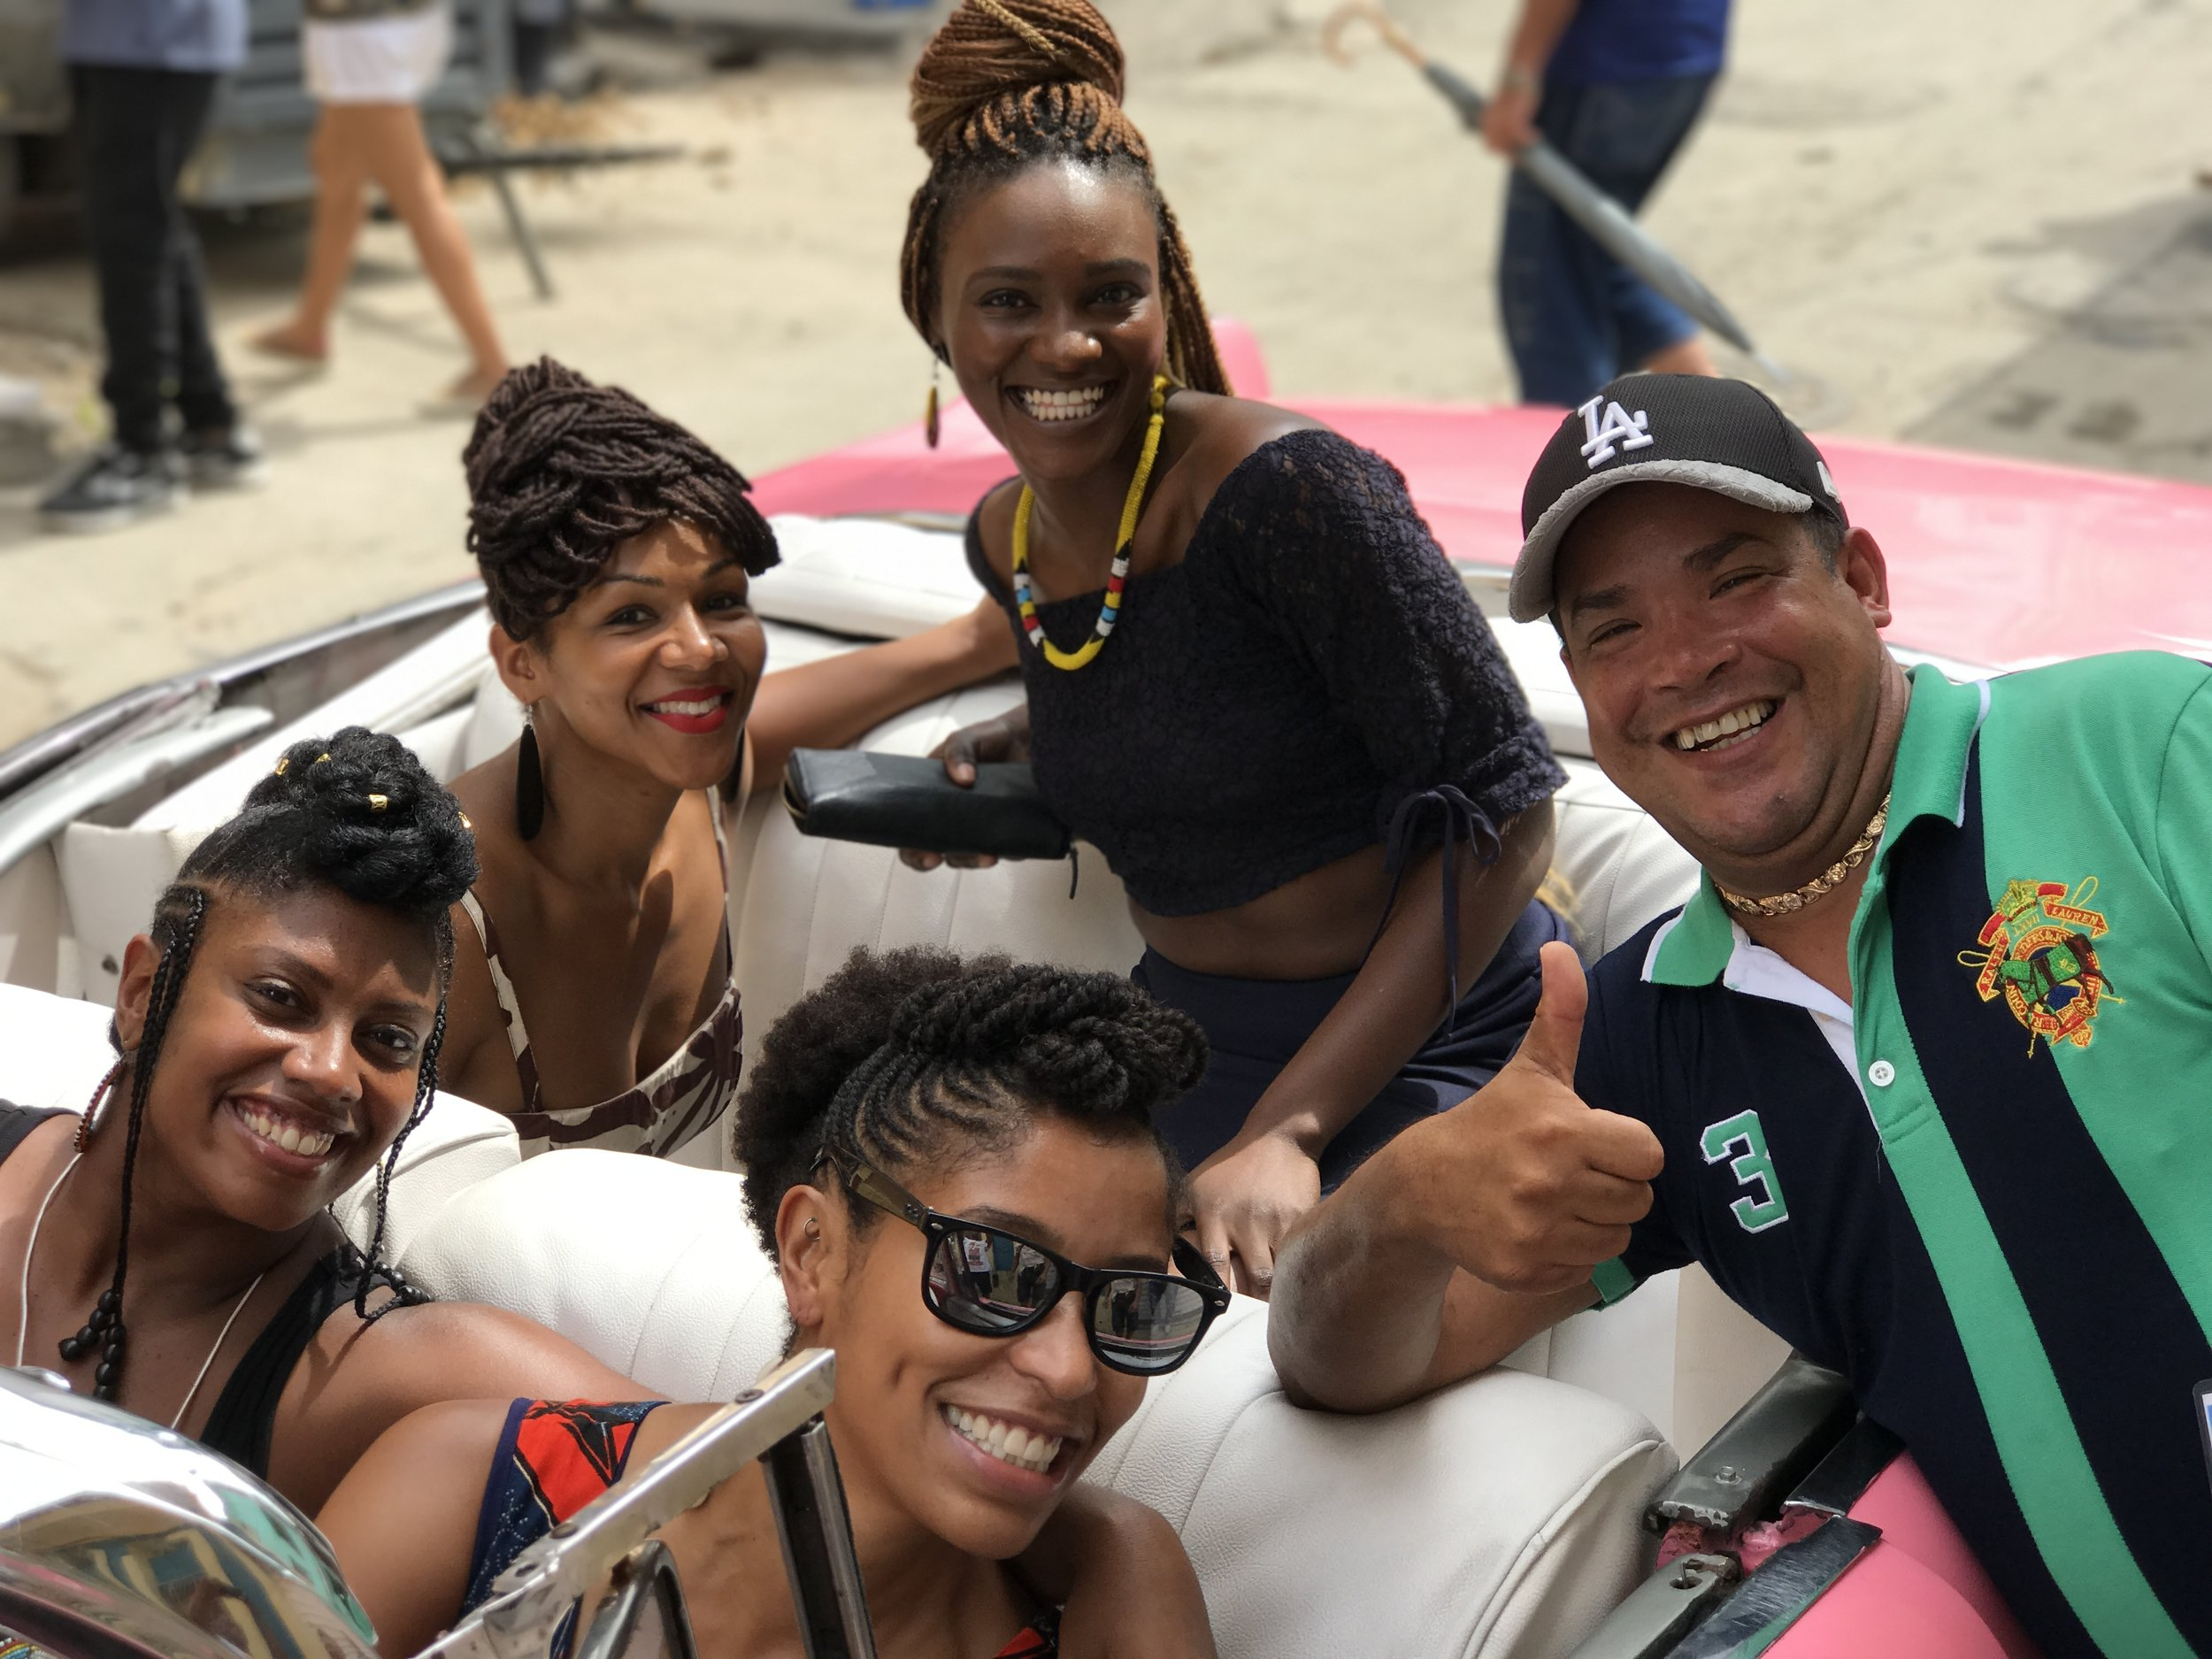 All Images are from Diaspora Excursions led by The African Diaspora Alliance.